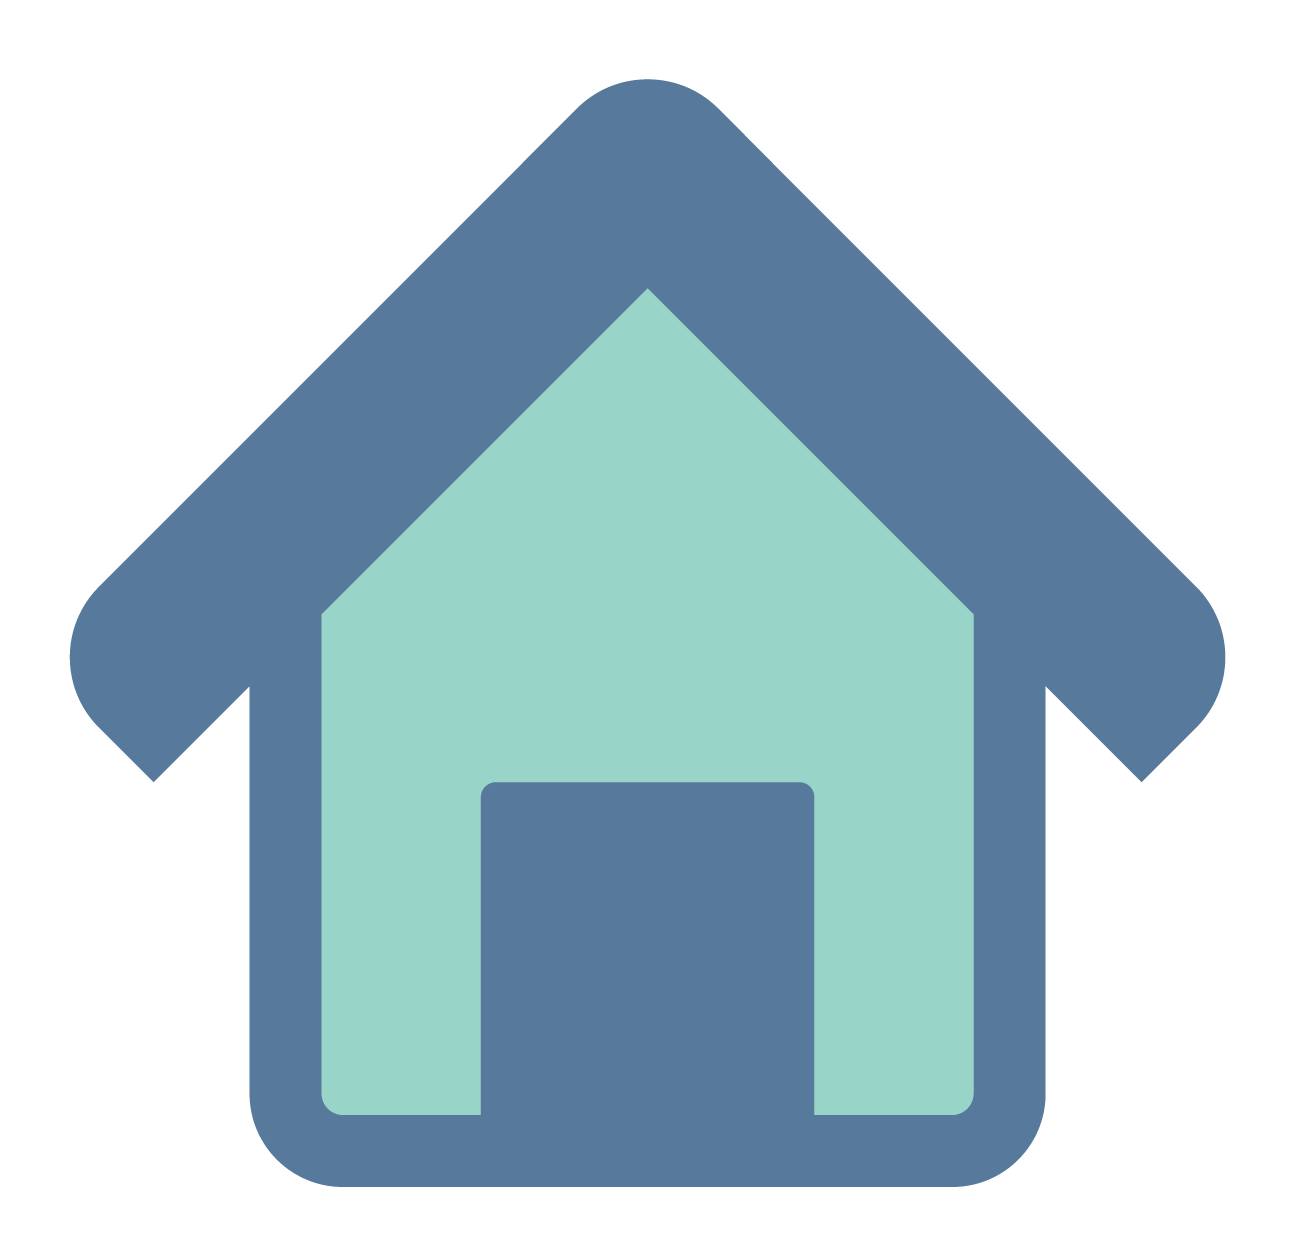 Onehomeicons 05